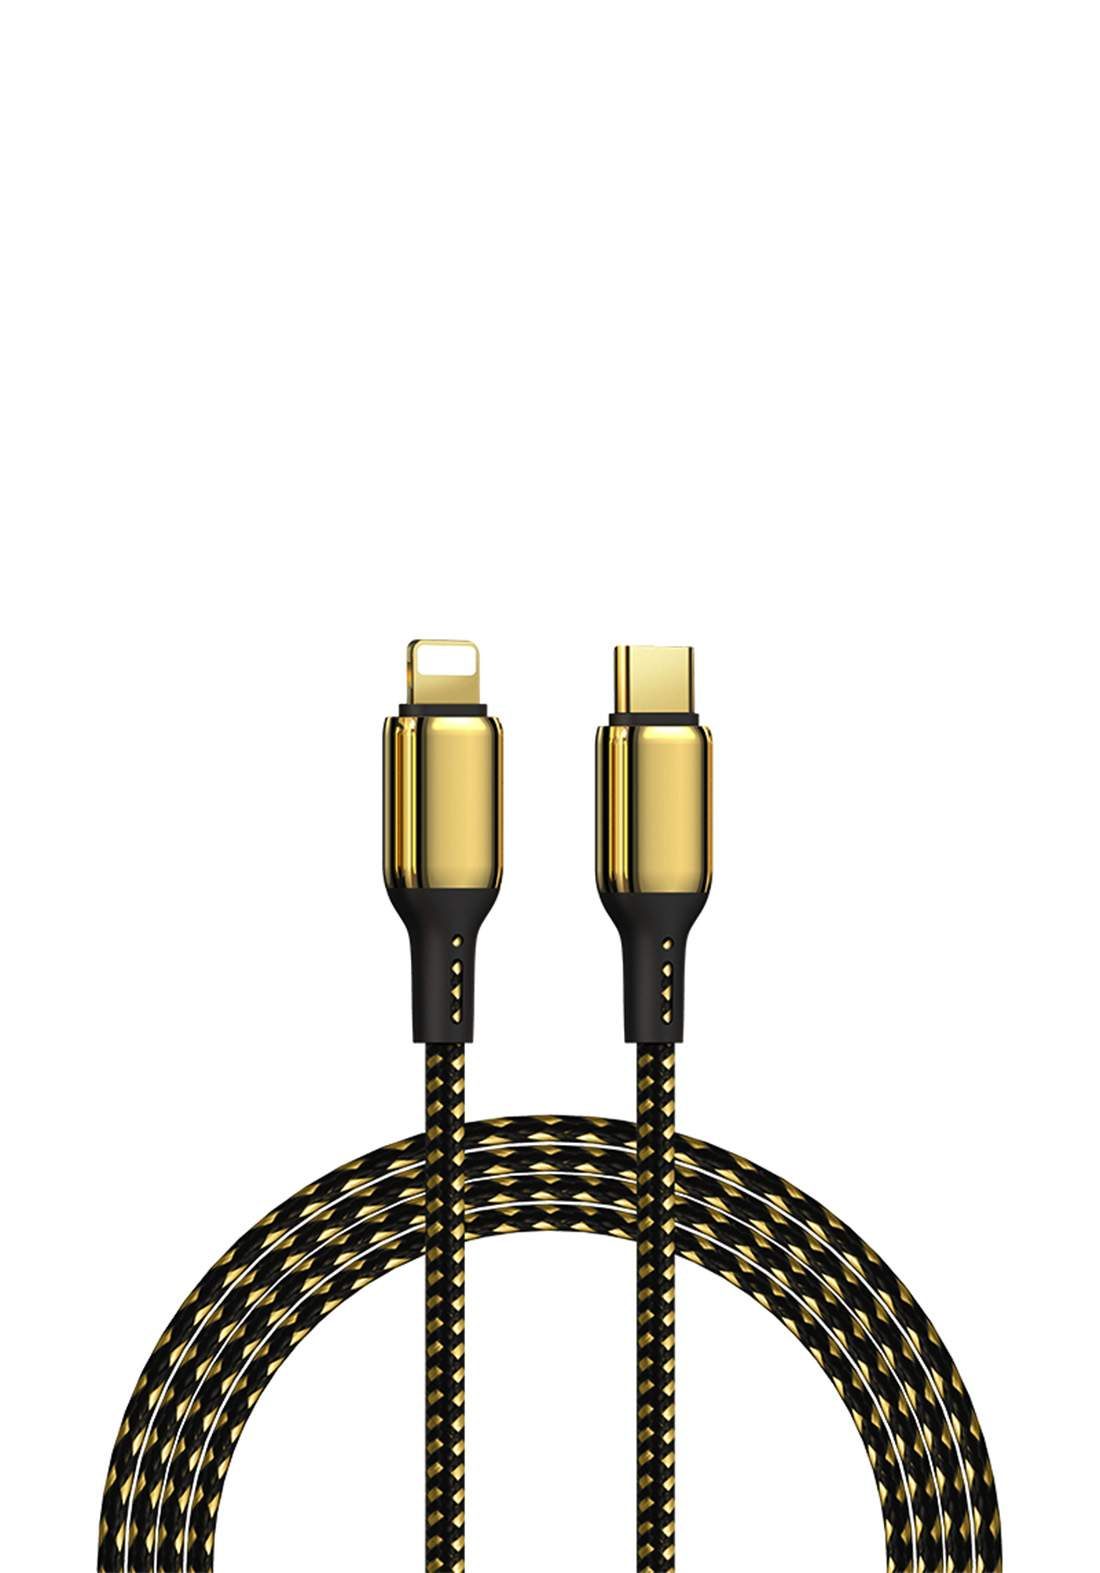 WIWU GD-103 USB-C to 1.2M Lightning 18k Gold Plated 20w Fast Charging Cable for iPhone - Gold  كابل